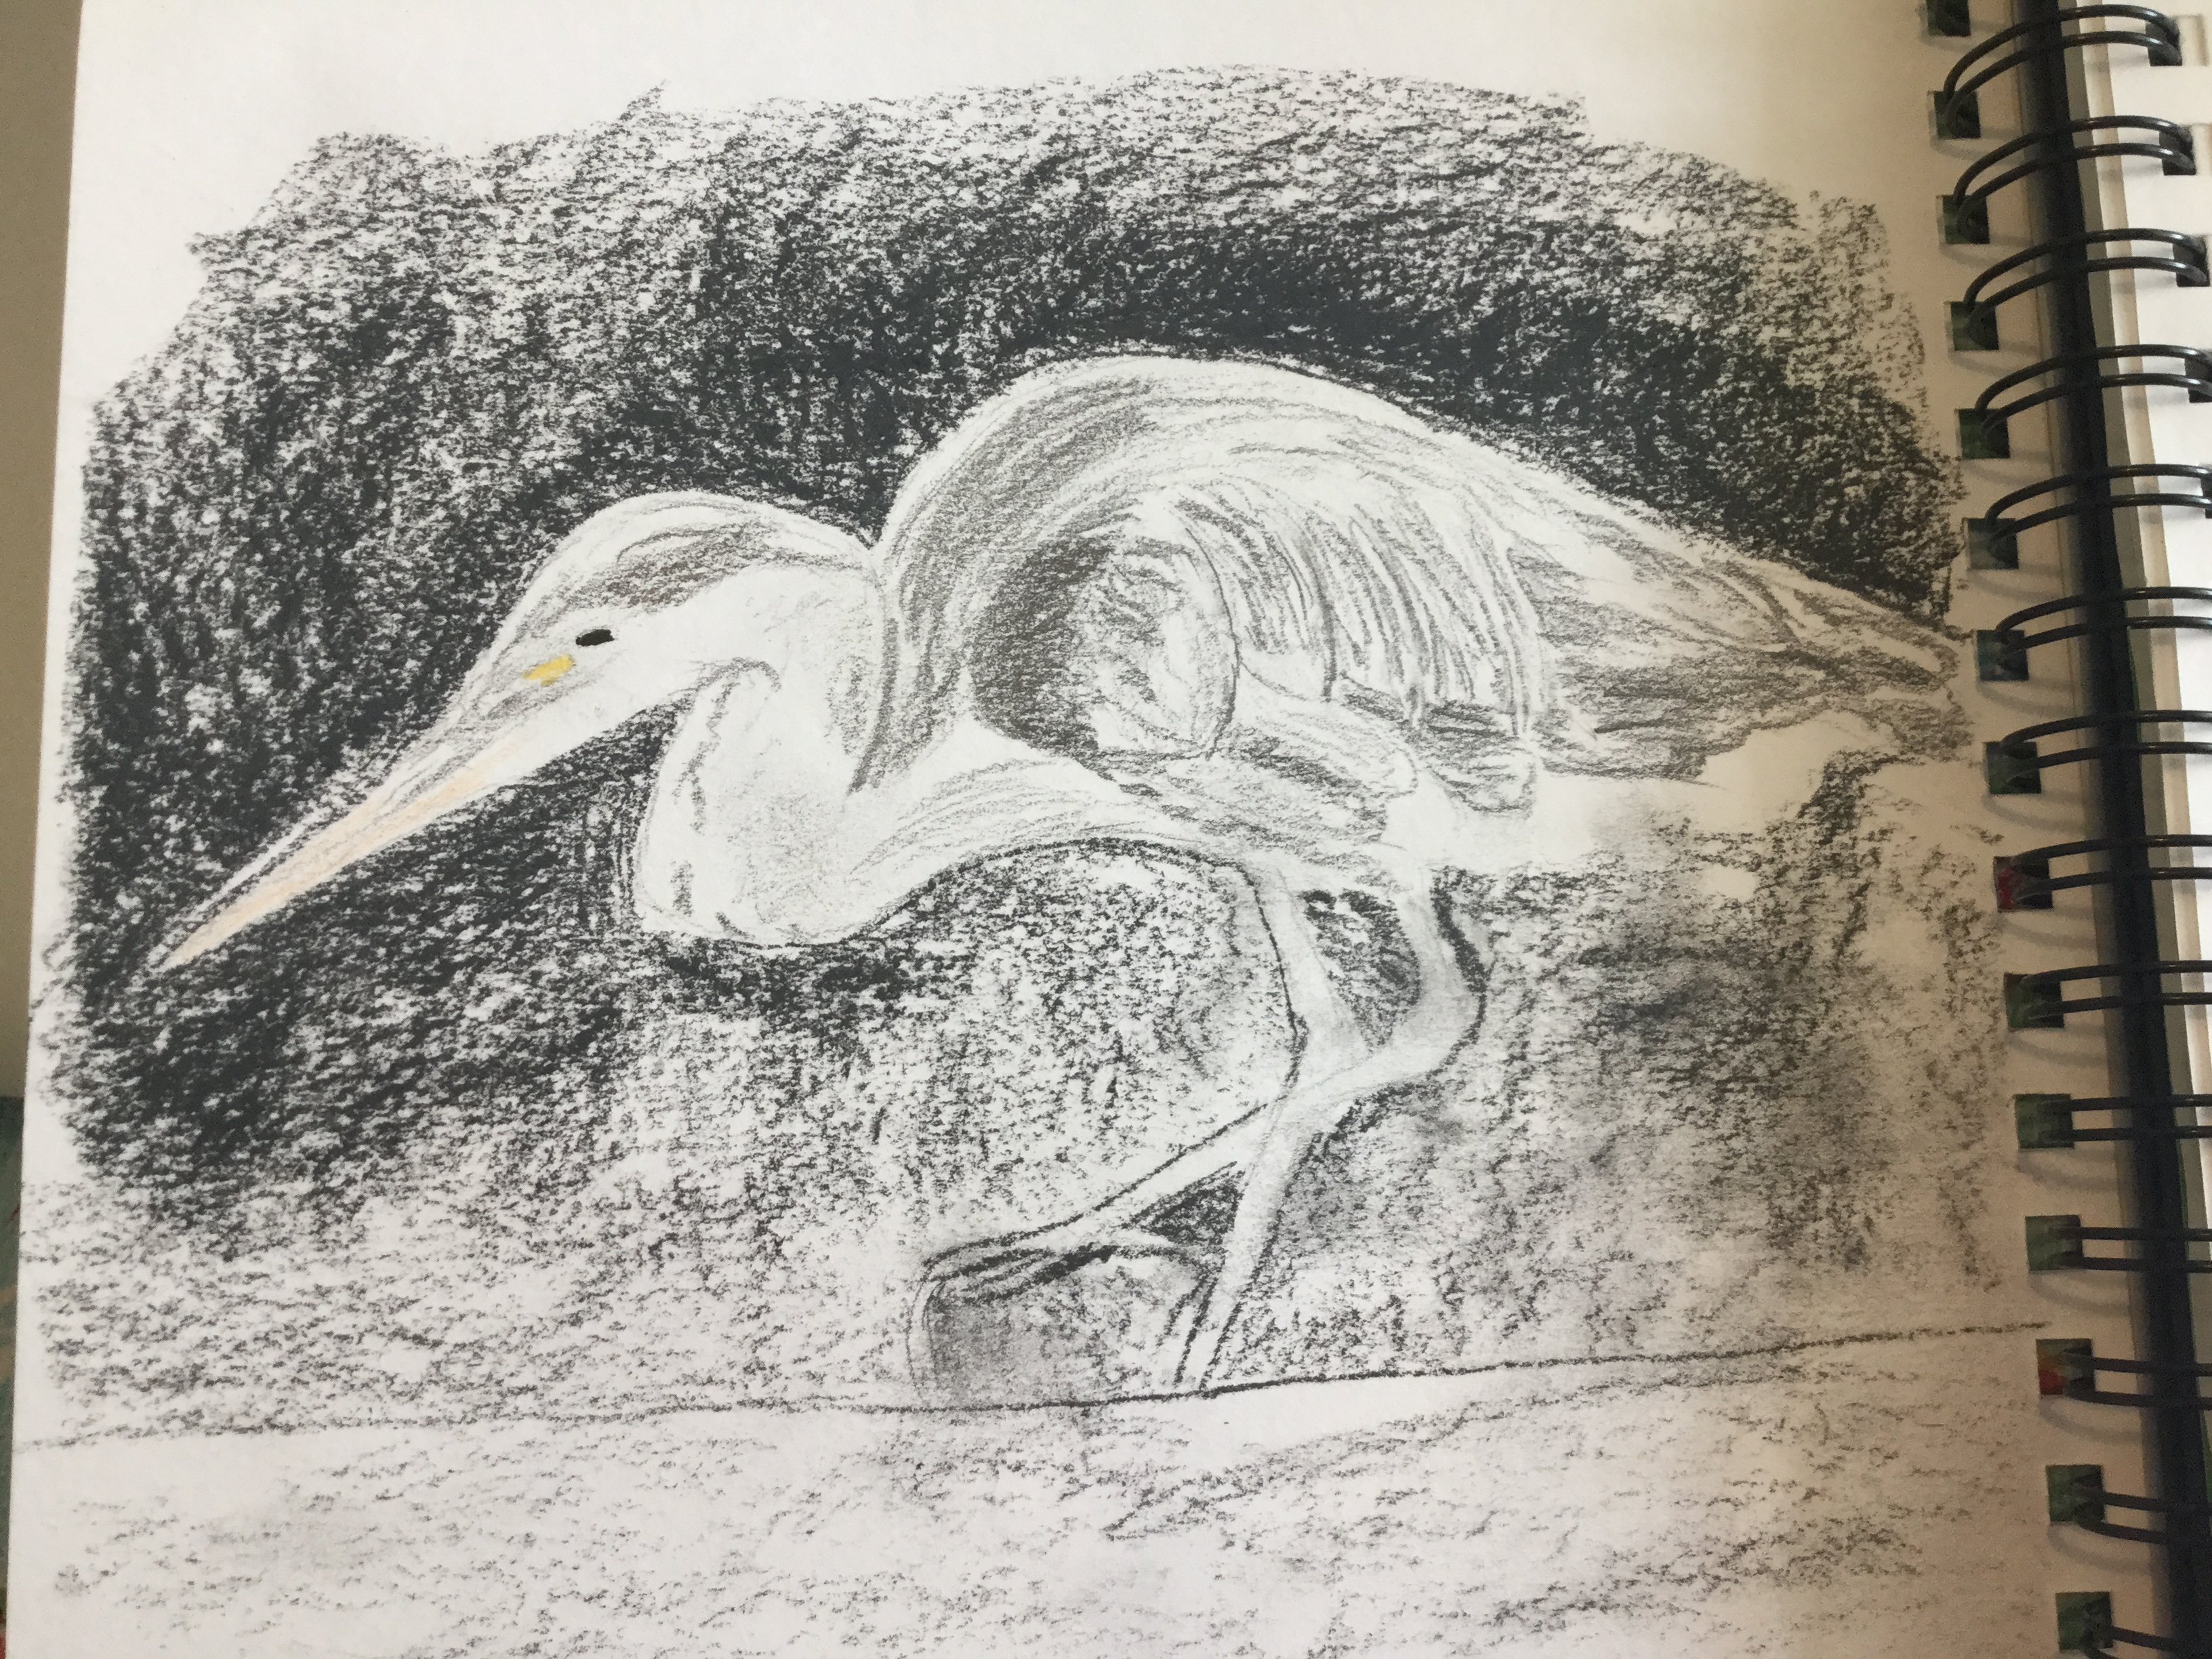 Charcoal drawing of heron by Christine